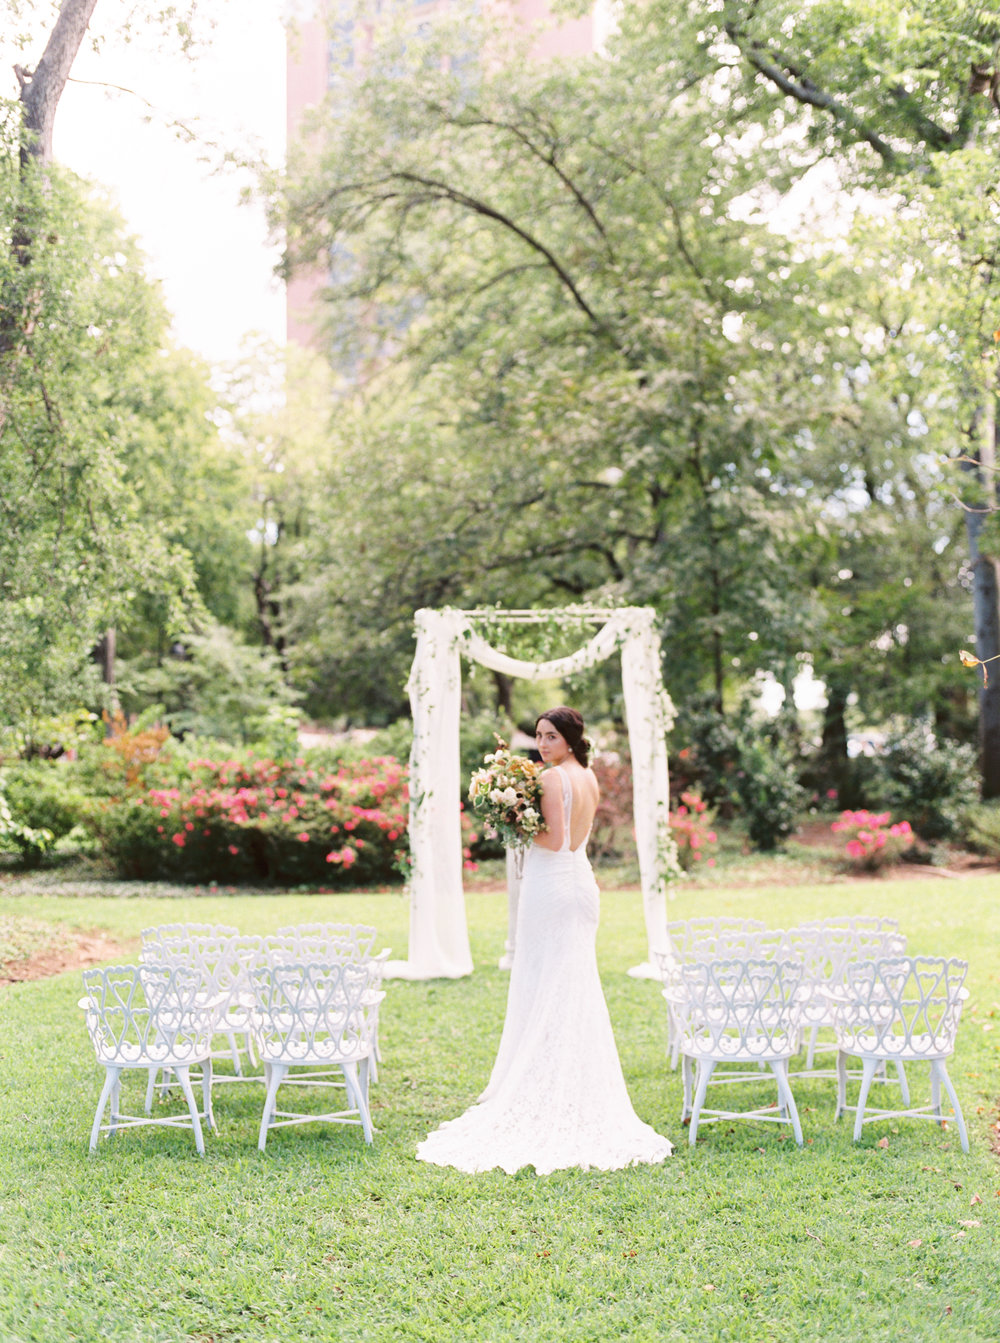 Callie Manion Photography_Garden Wedding Inspiration_141.jpg